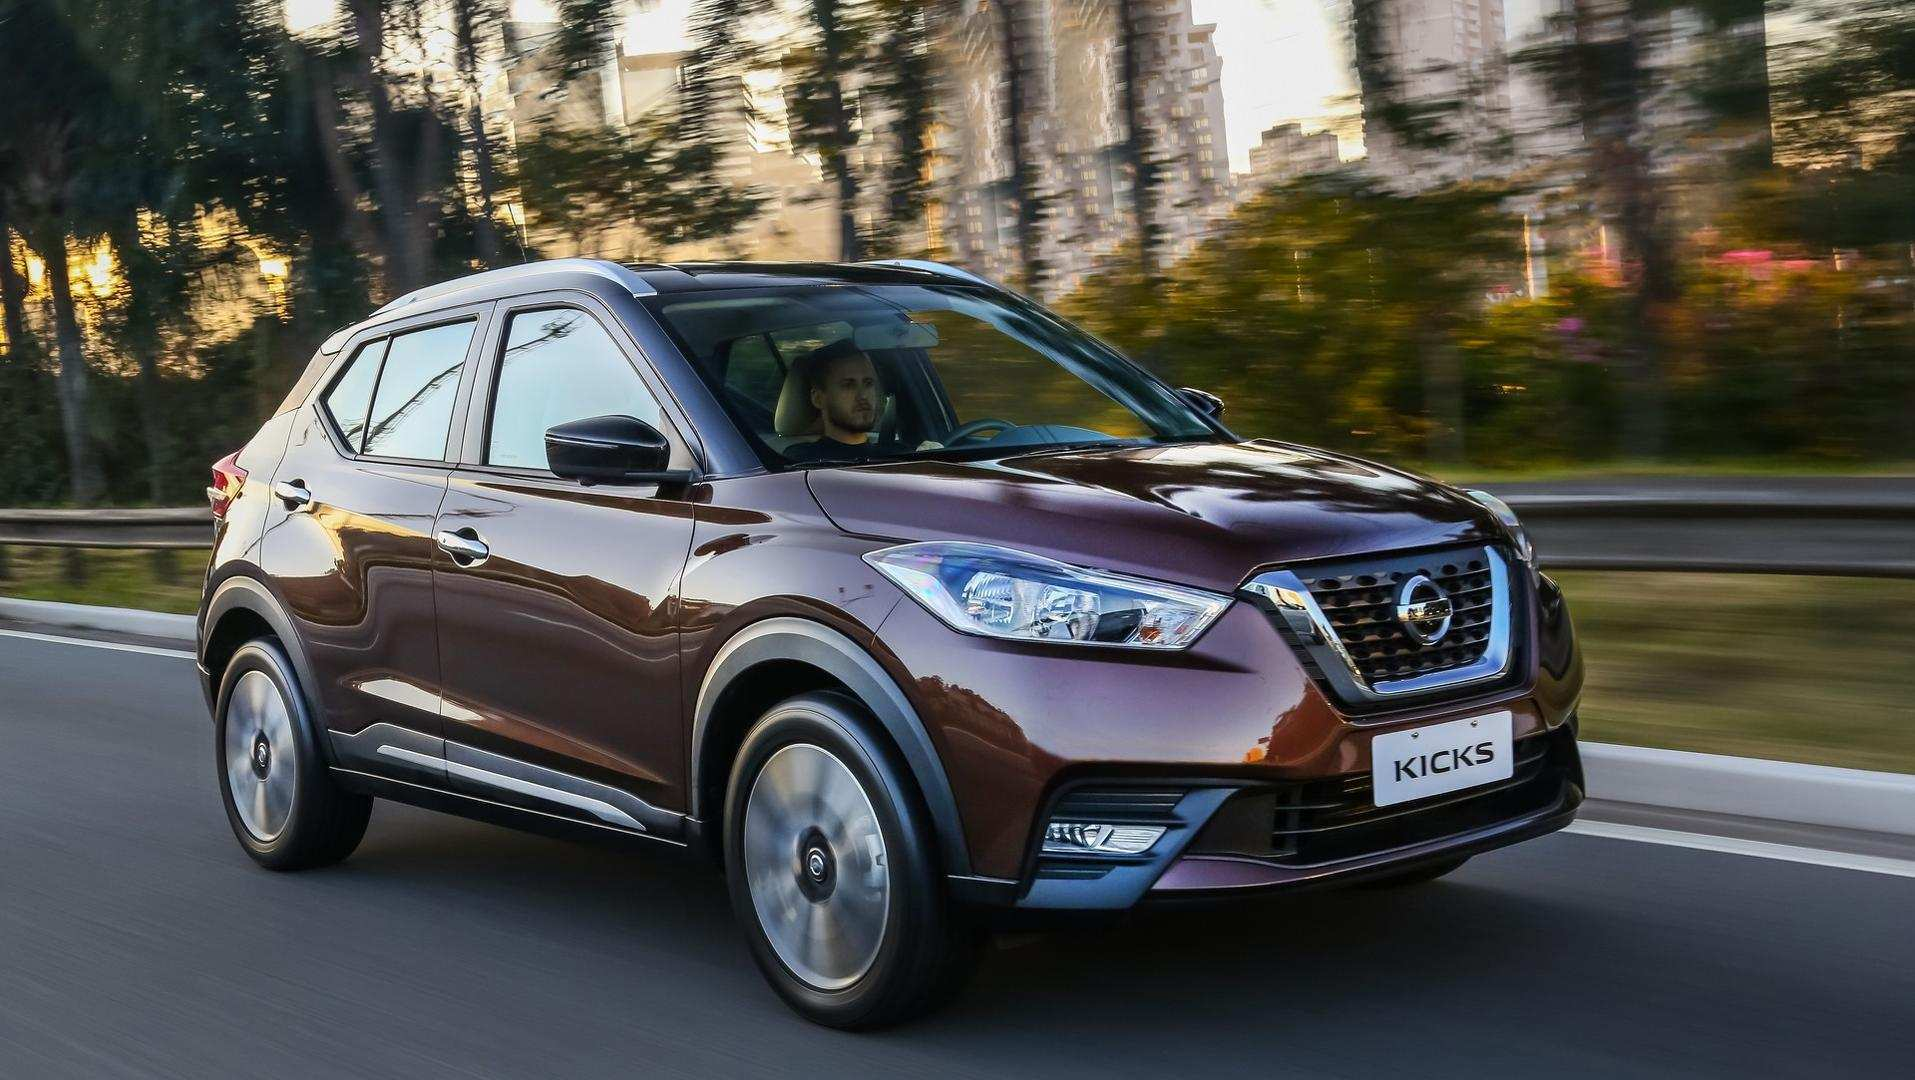 81 Great Nissan Kicks 2020 Mudanças Release with Nissan Kicks 2020 Mudanças